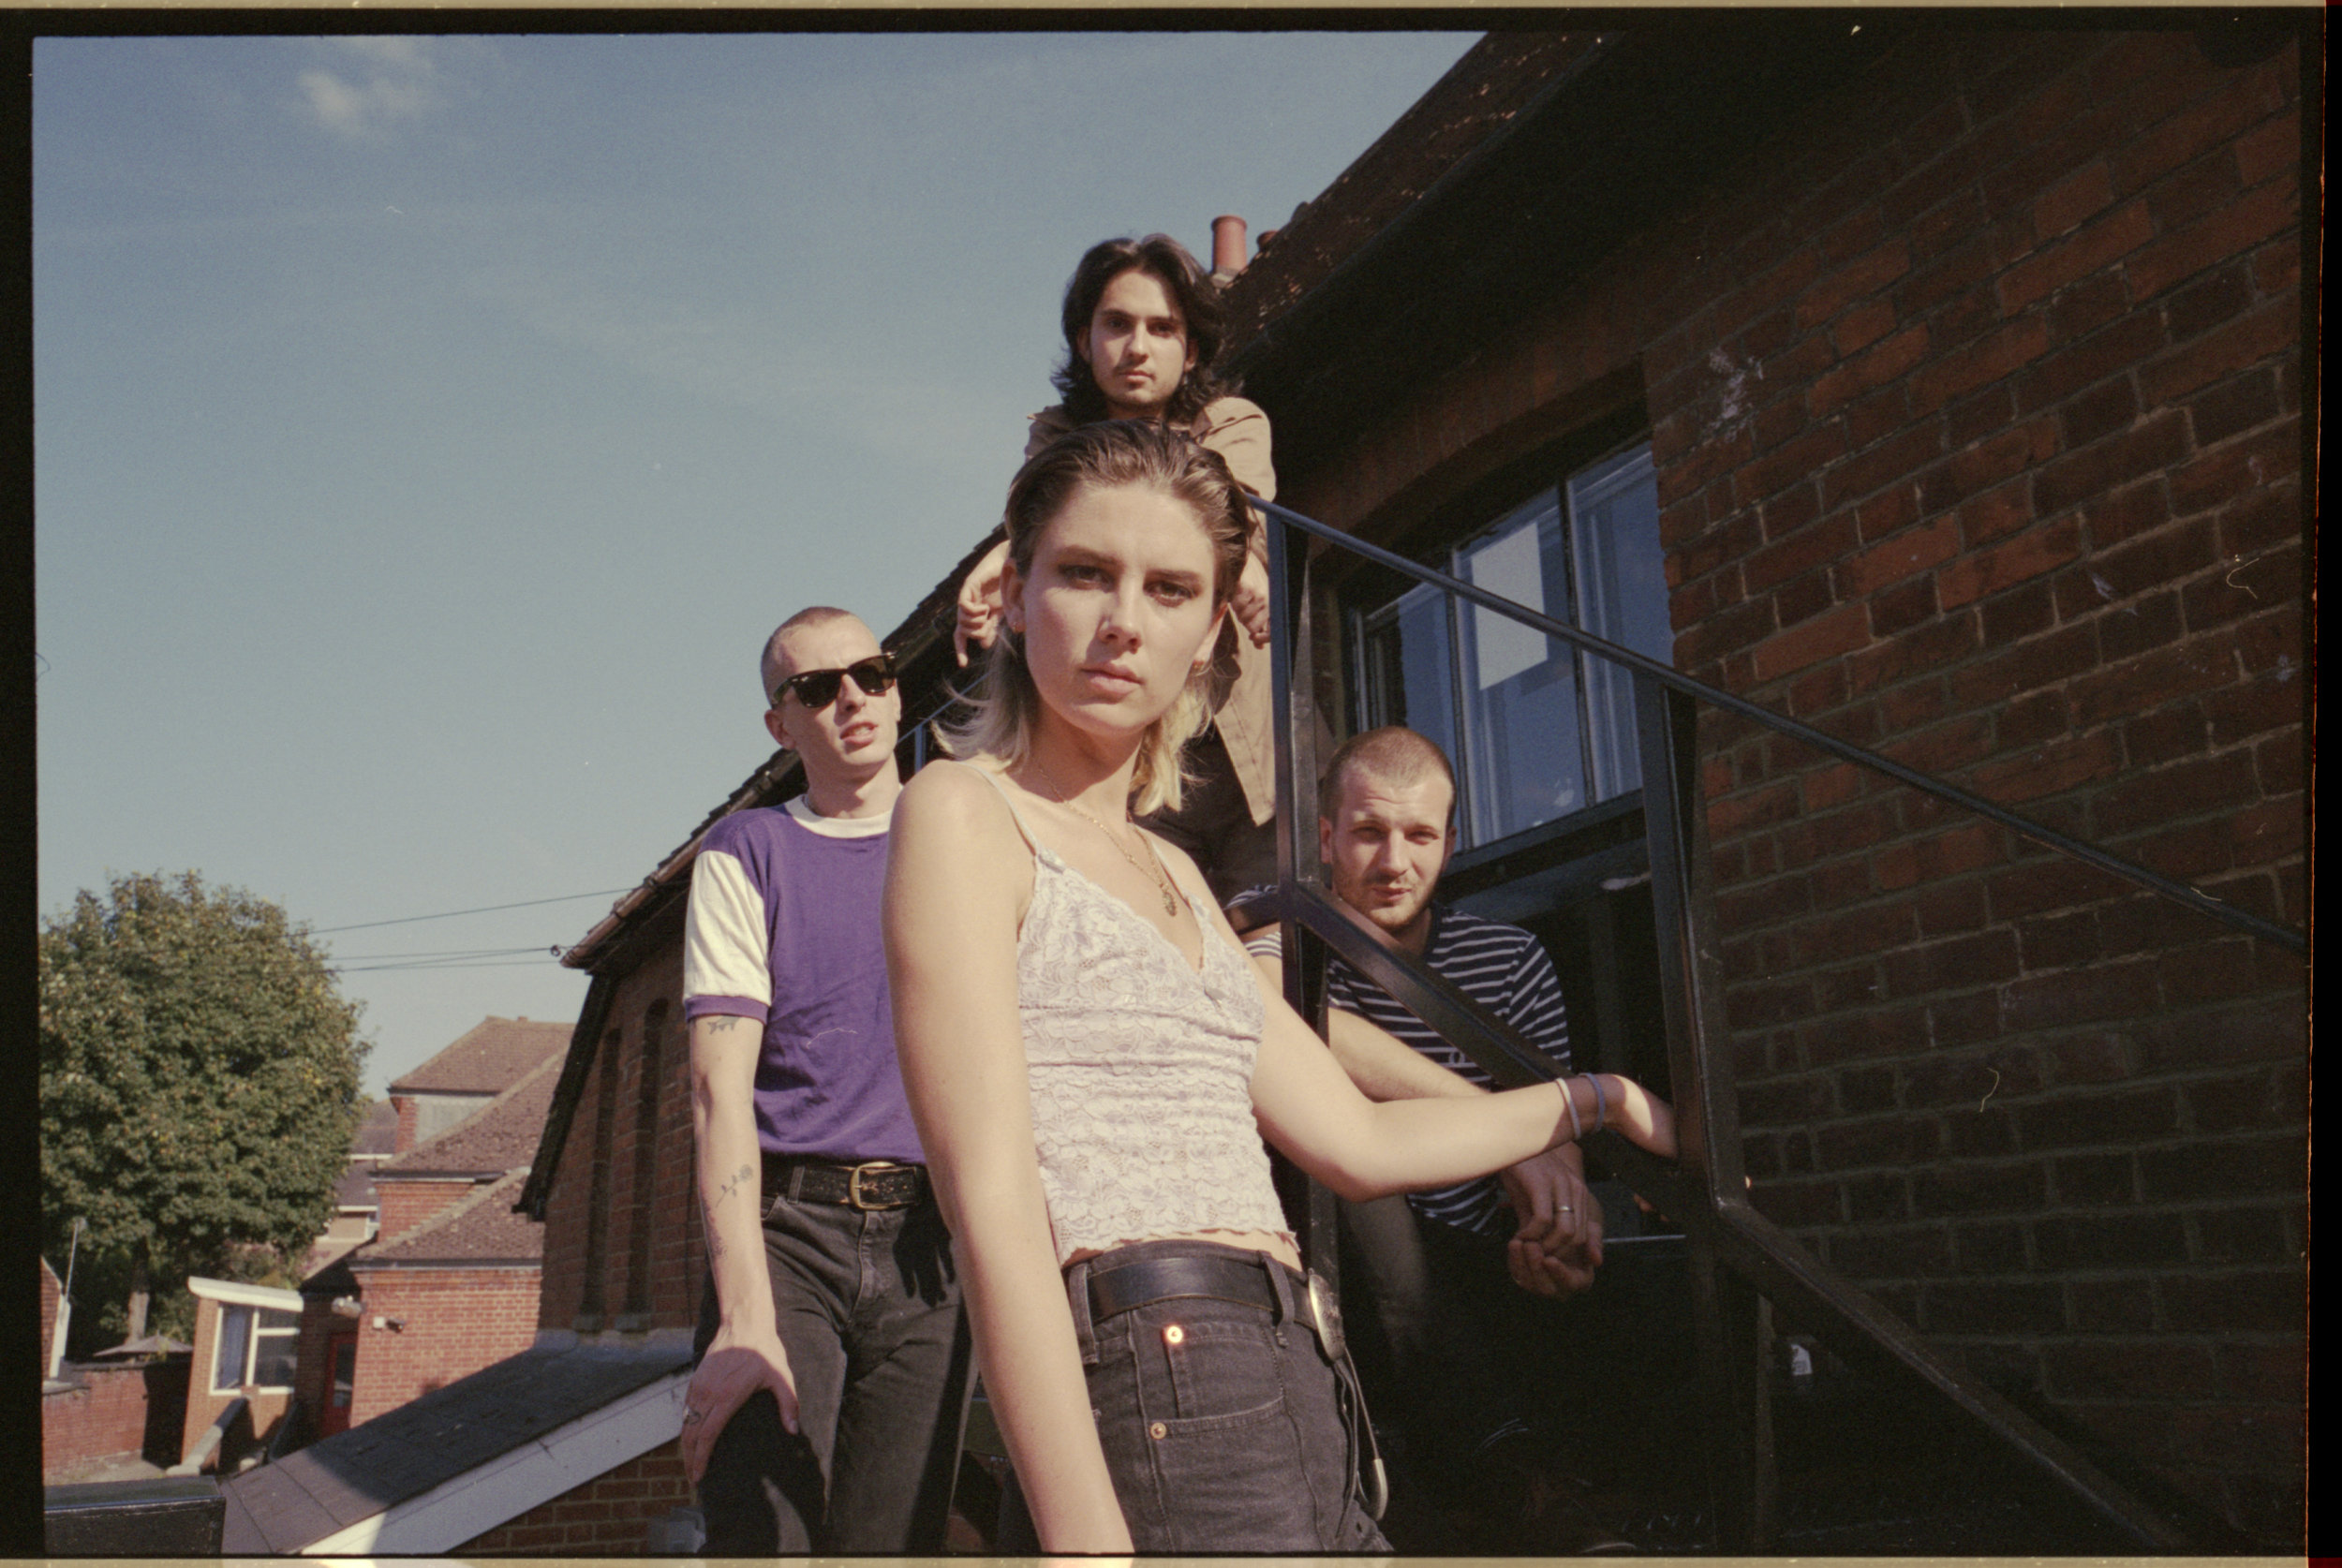 Wolf Alice UK 2018 01 - please credit Jono White.jpg